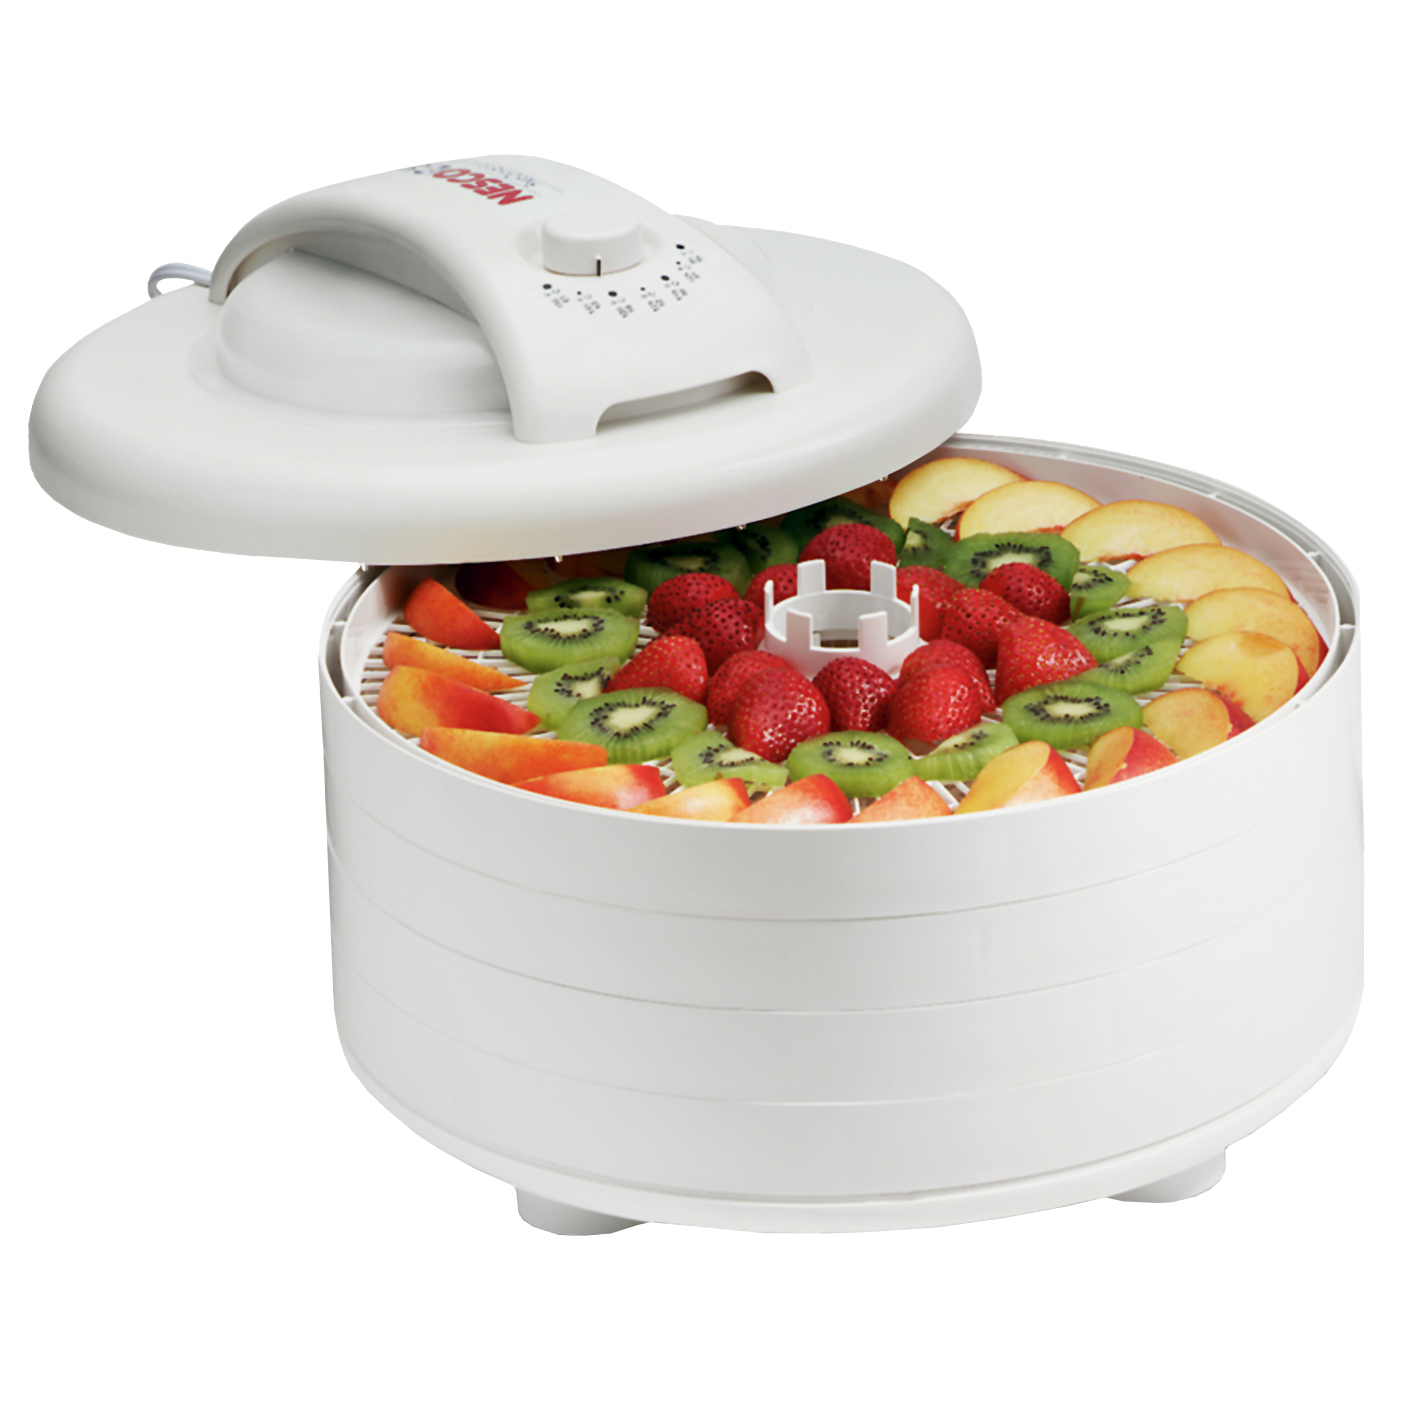 Nesco FD-60 Snackmaster Express Food Dehydrator by The Metal Ware Corporation